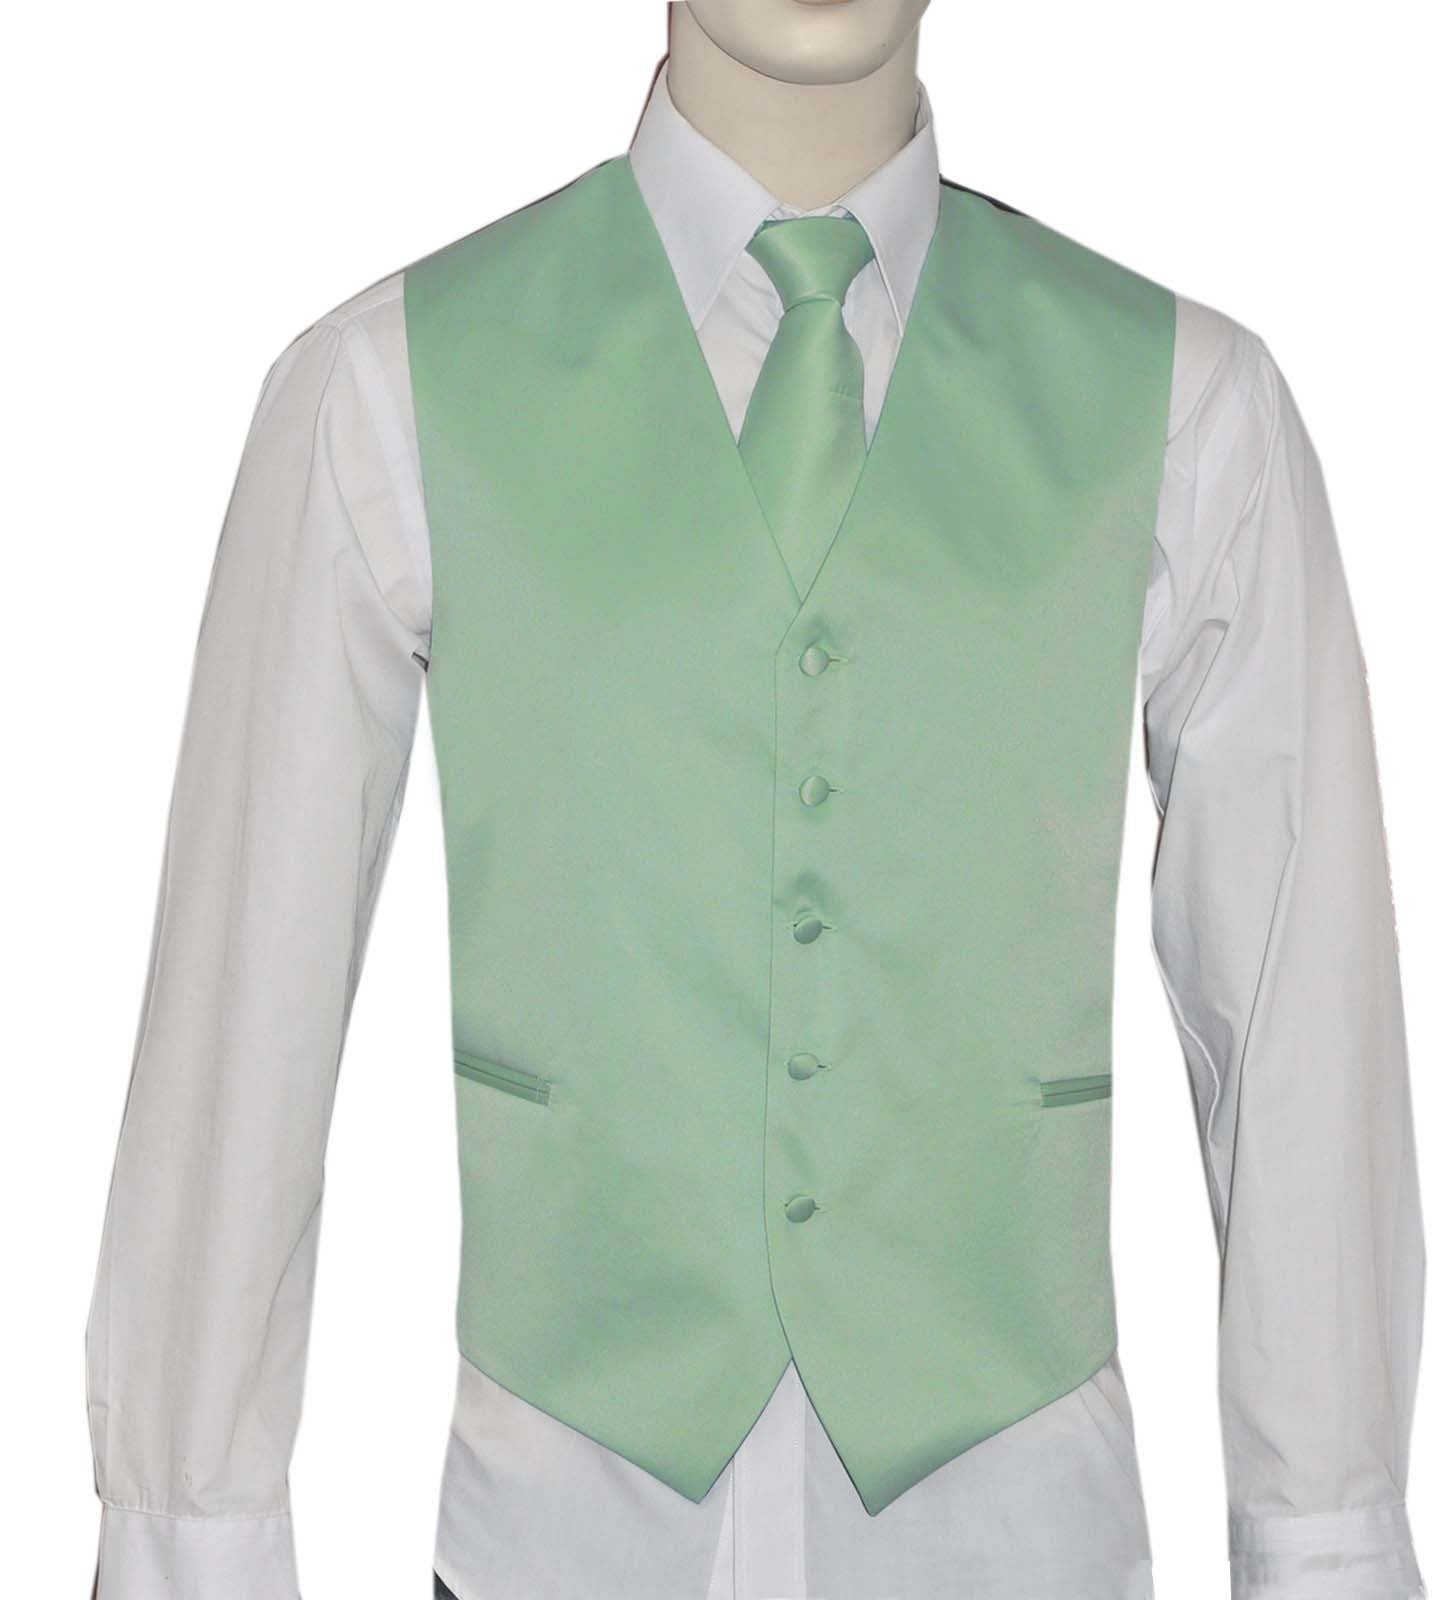 Mint Vest and Tie Set